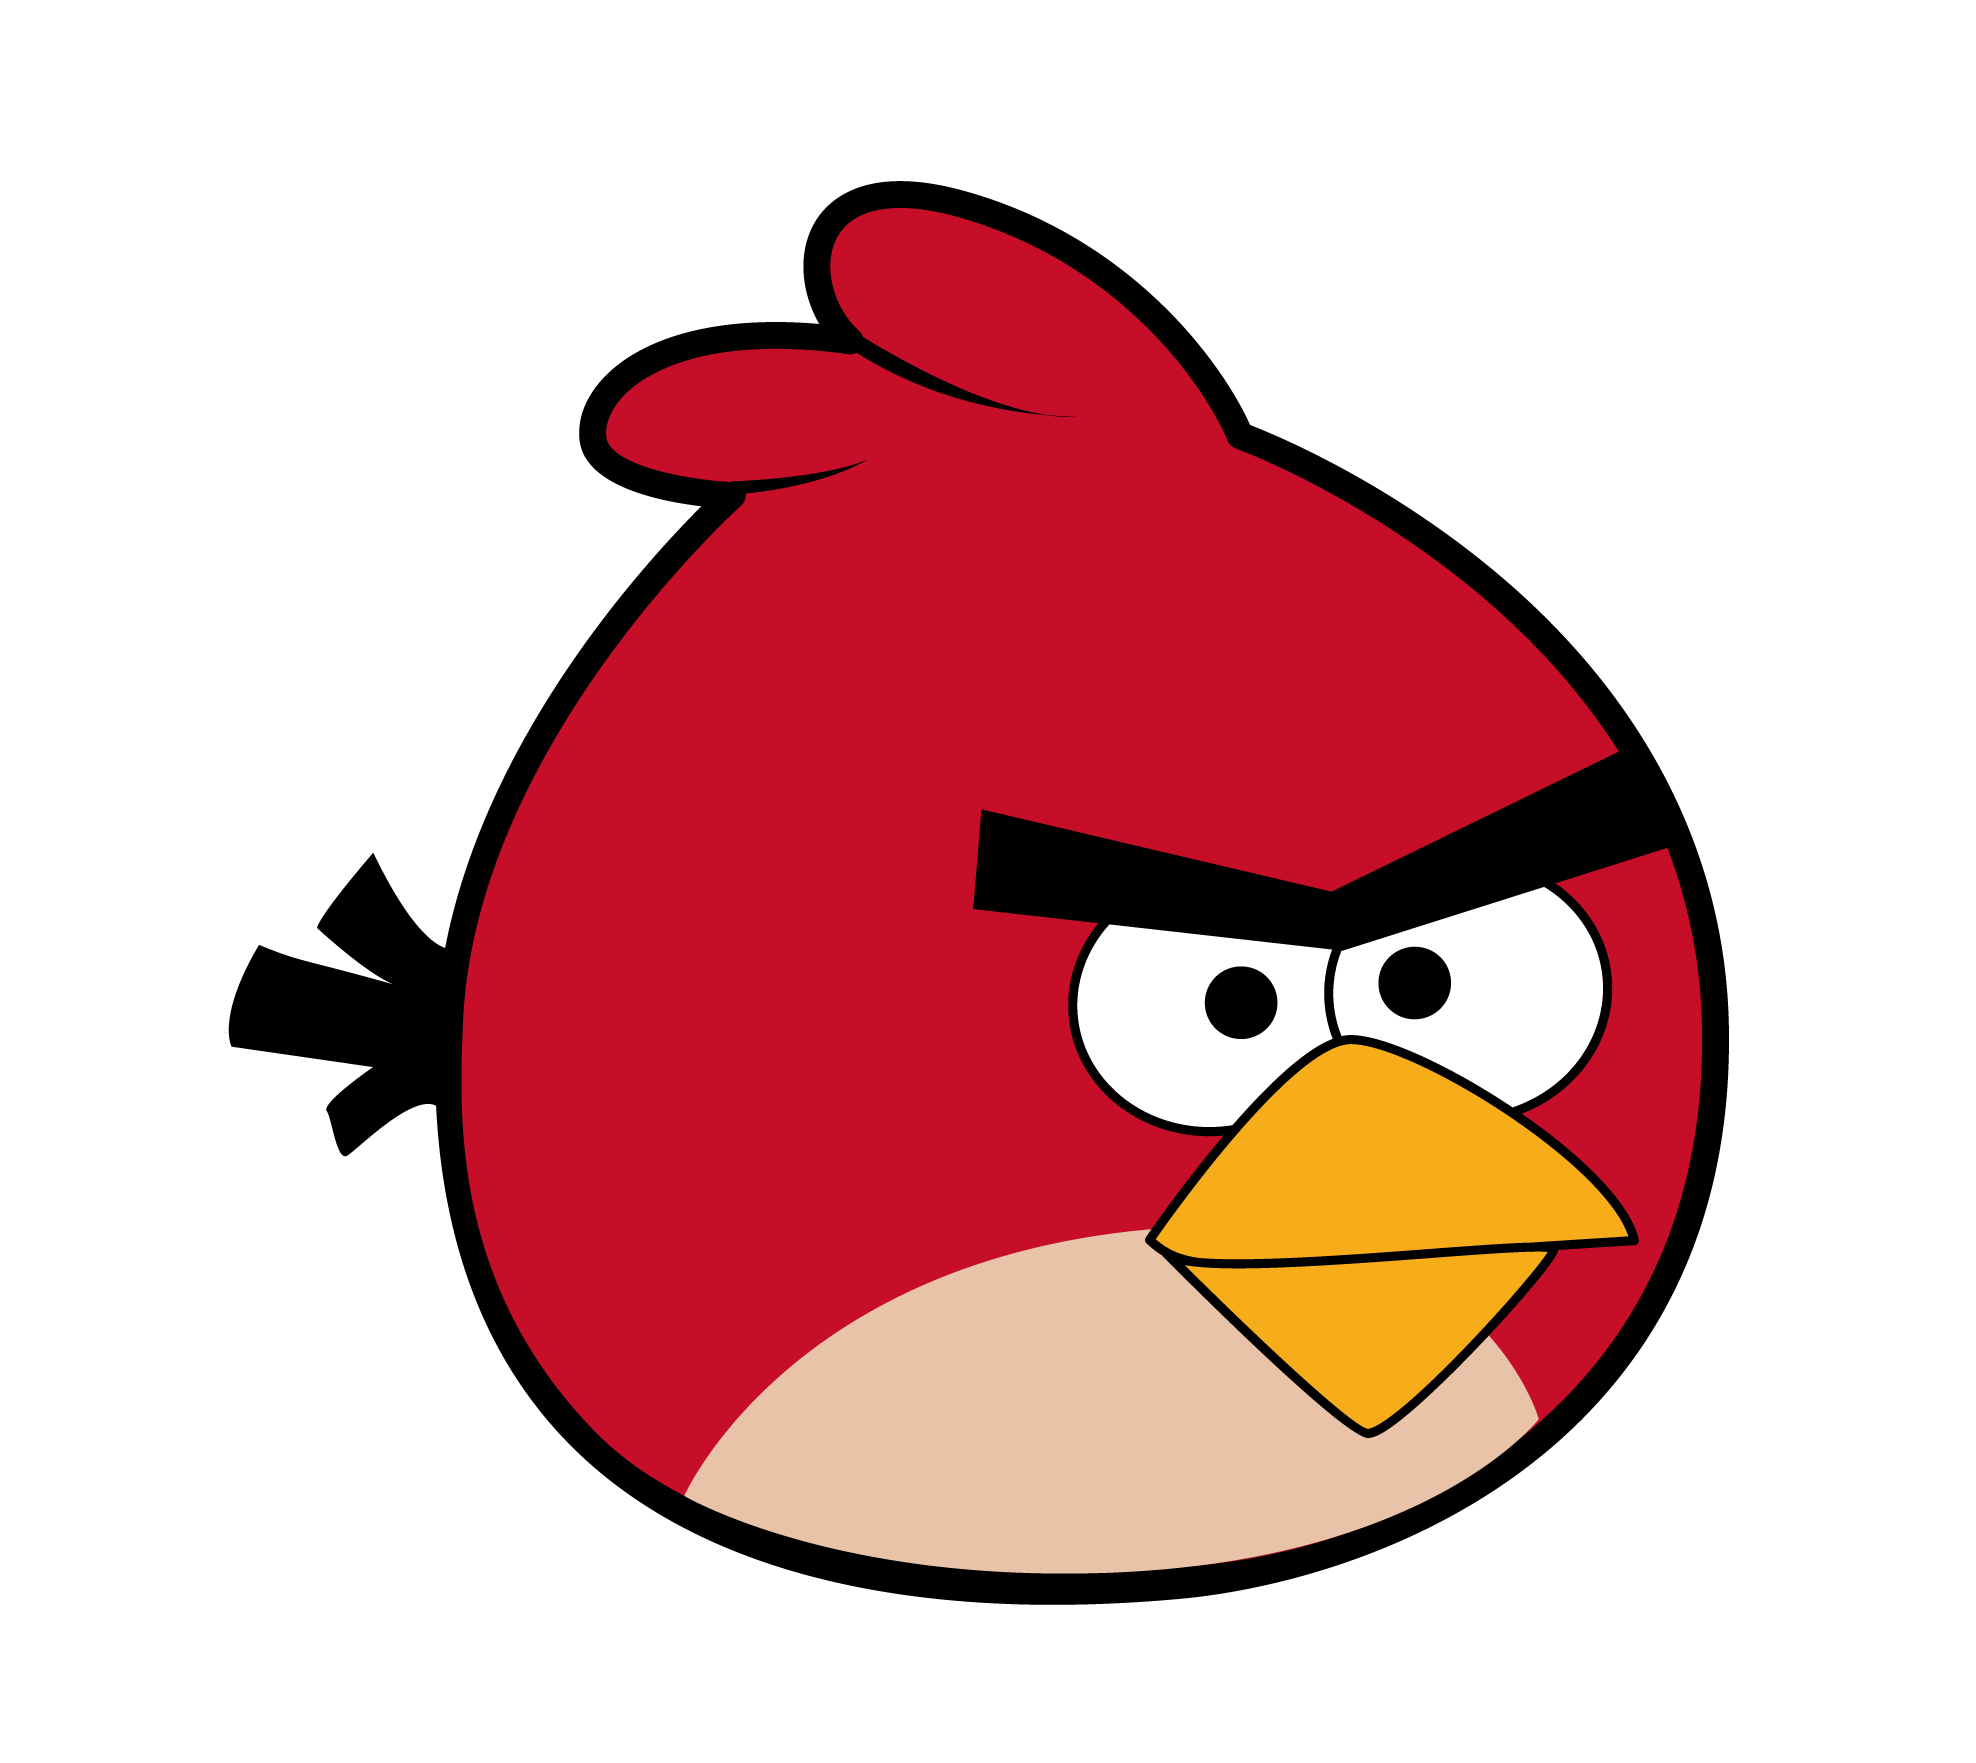 All things birds free. Pigs clipart angry bird